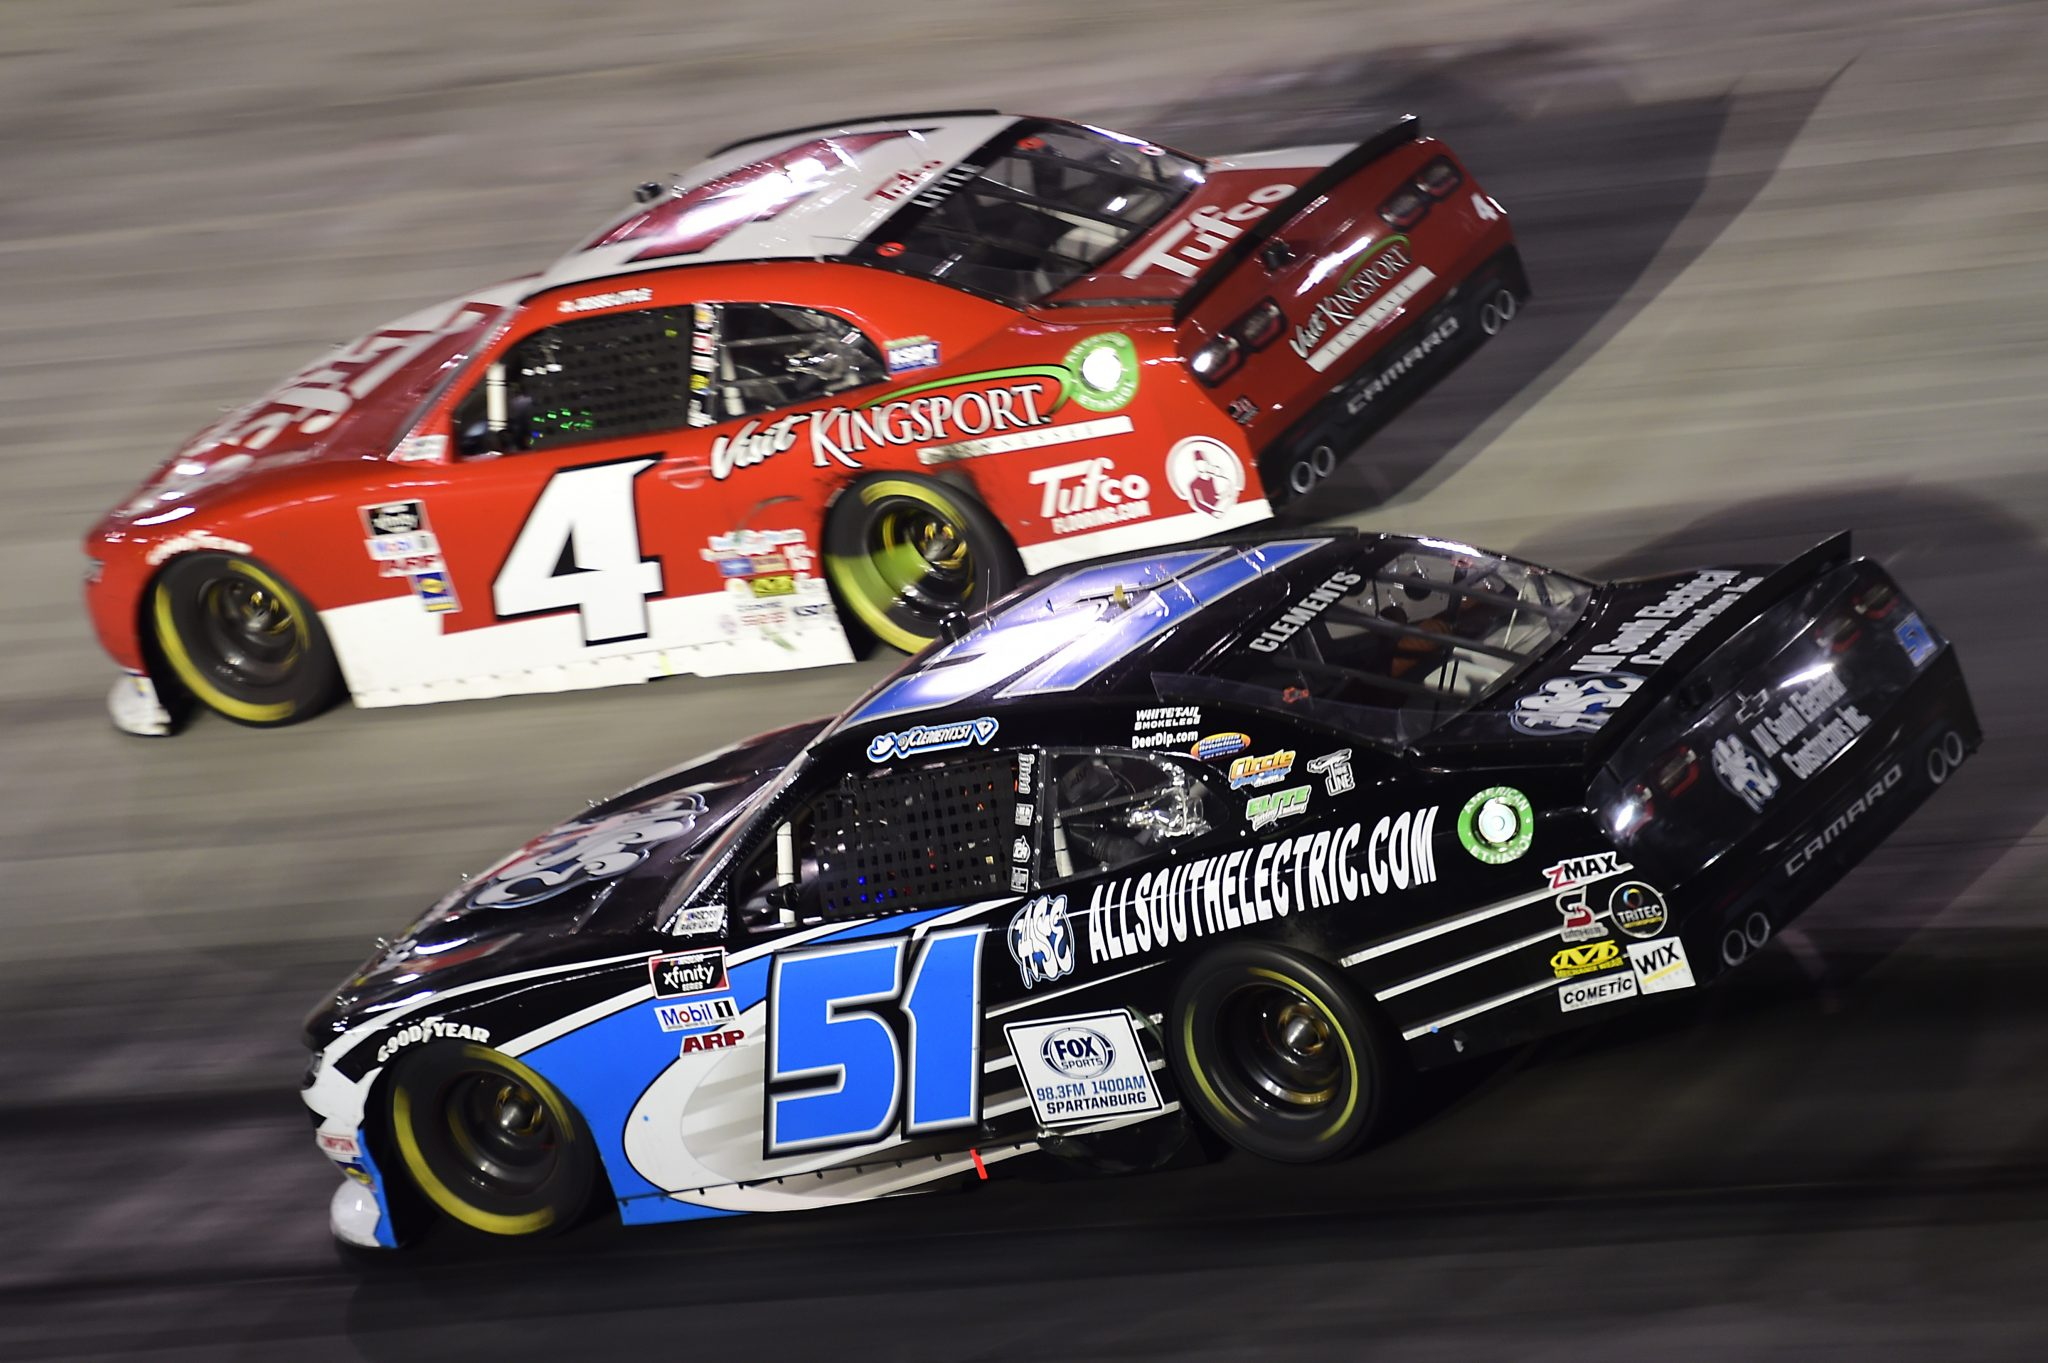 BRISTOL, TENNESSEE - SEPTEMBER 18: Jeremy Clements, driver of the #51 AllSouthElectric.com Chevrolet, and Jesse Little, driver of the #4 TufcoFlooring.com Chevrolet, race during the NASCAR Xfinity Series Food City 300 at Bristol Motor Speedway on September 18, 2020 in Bristol, Tennessee. (Photo by Jared C. Tilton/Getty Images)   Getty Images